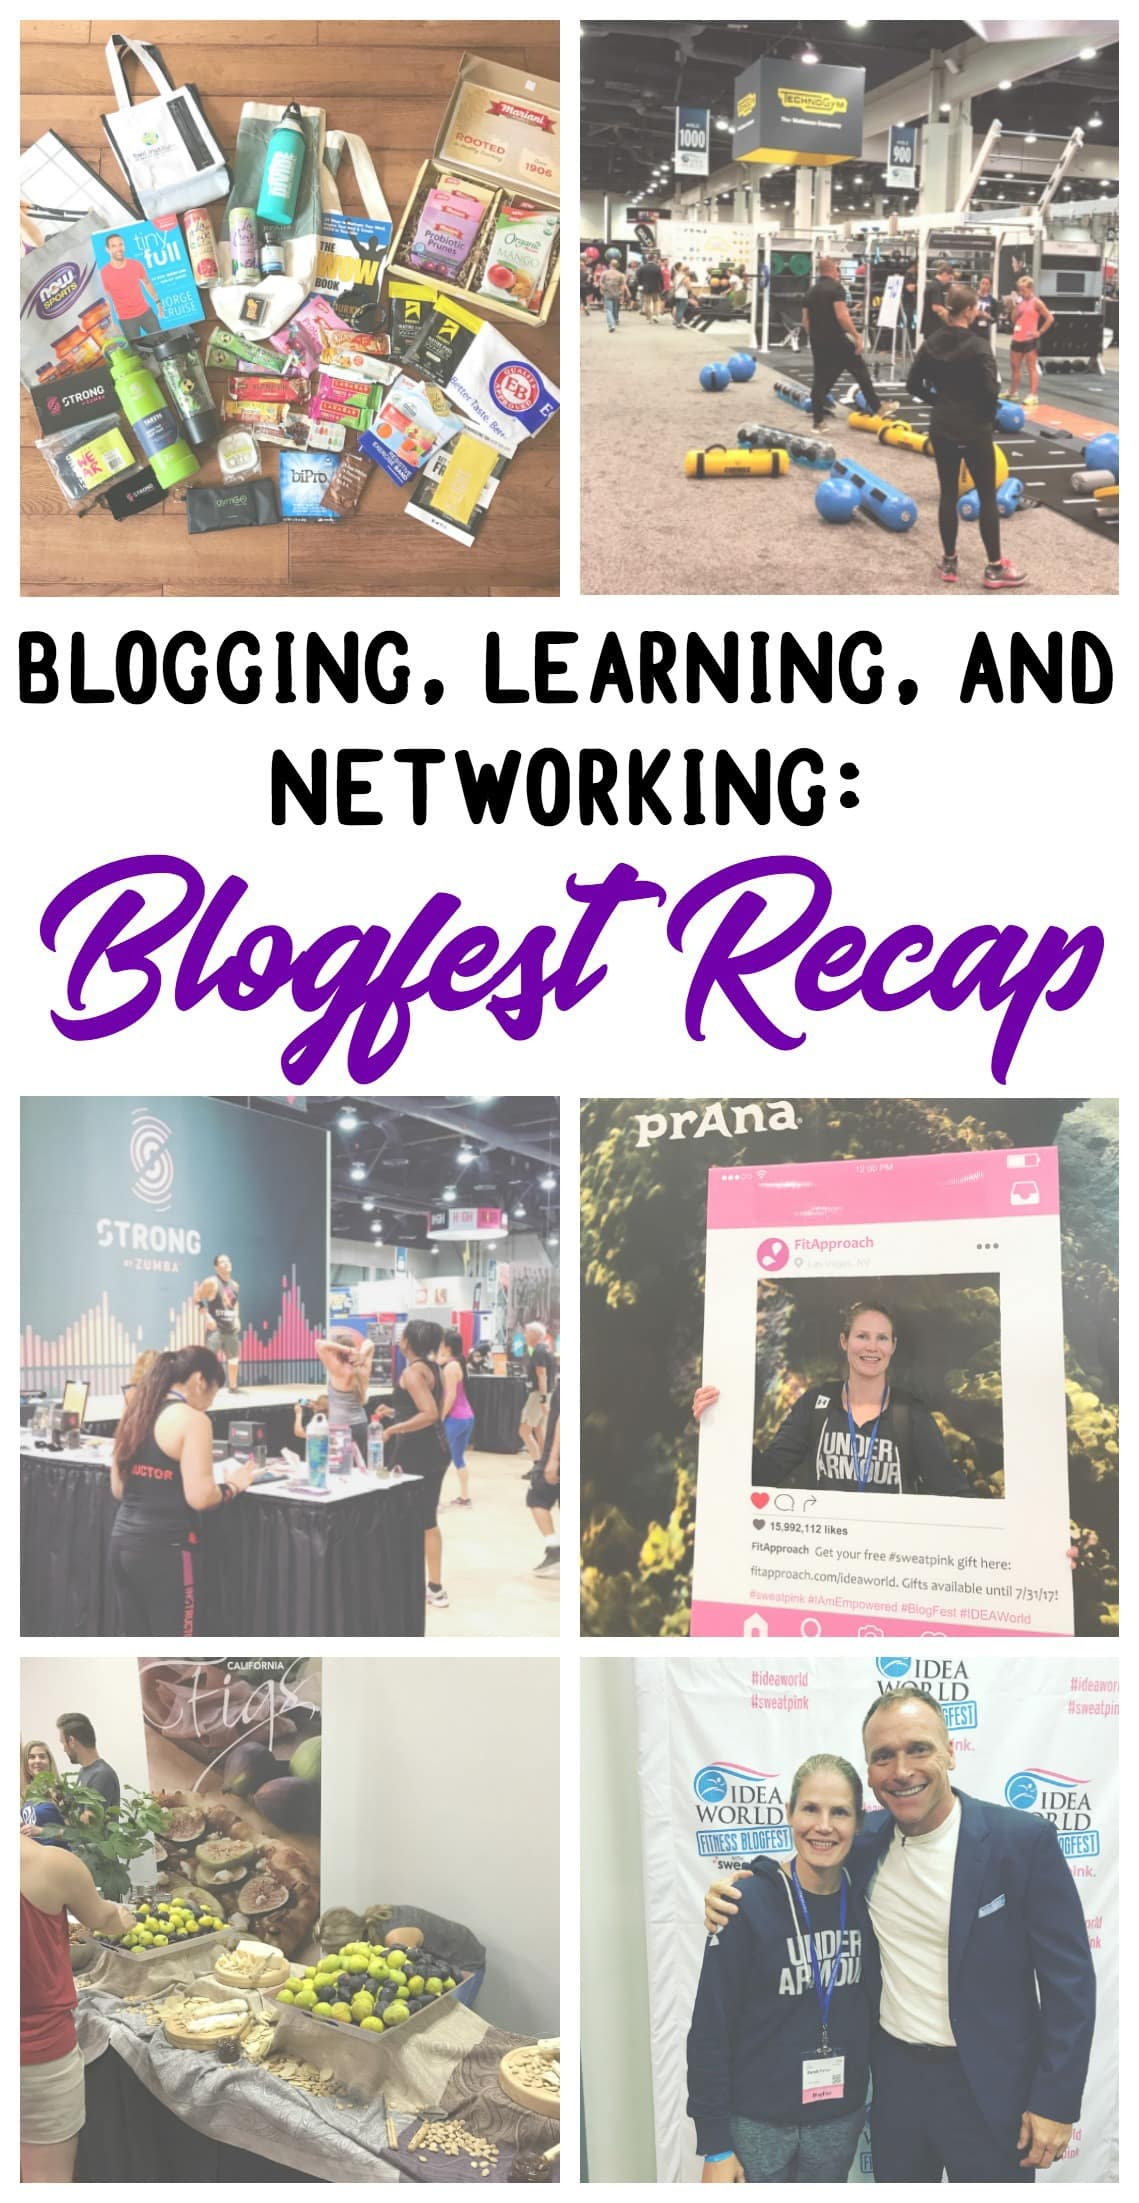 Want to know what it's like to go to Blogfest? Here's my recap of this year's Blogfest in Las Vegas! Lots of blogging, learning, and networking with great brands and blogging friends - @TheFitCookie